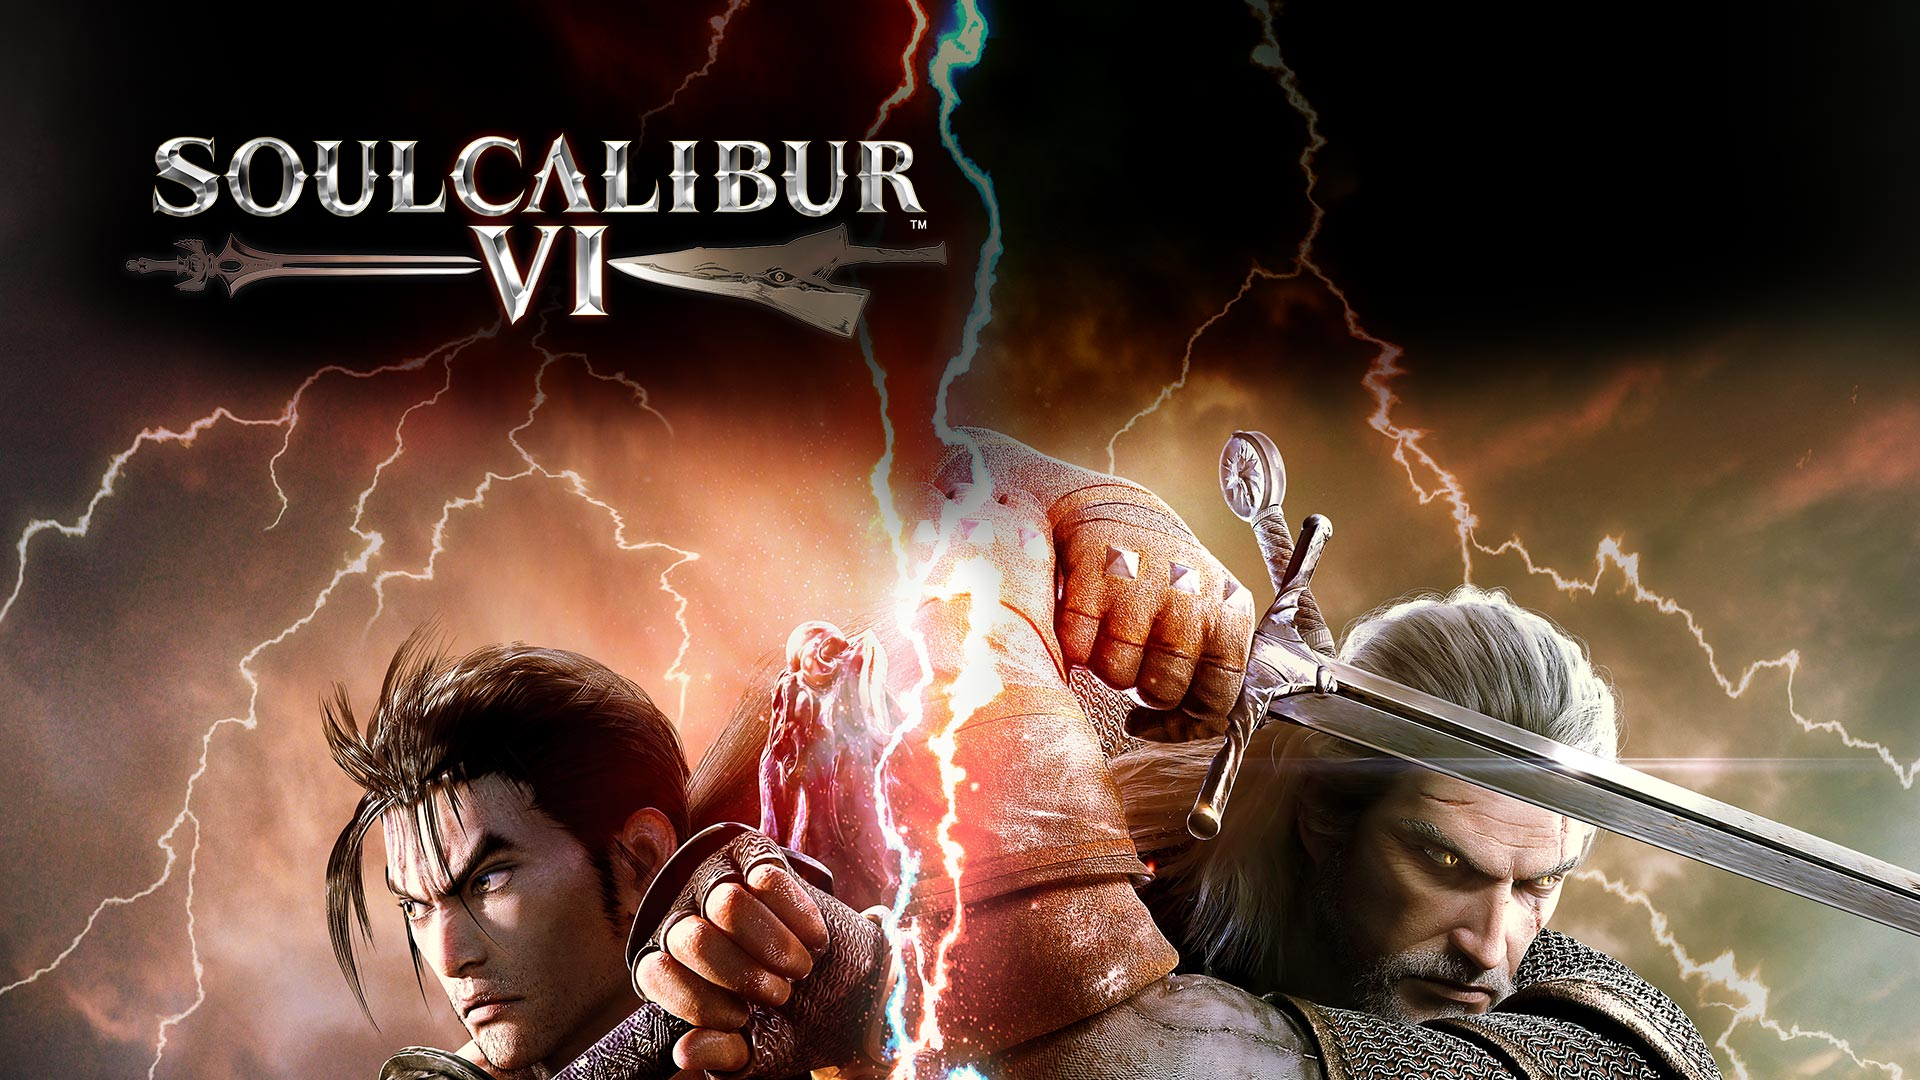 Soul Caliber VI, Heishiro Mitsurugi and Geralt of Rivia back to back with swords drawn.